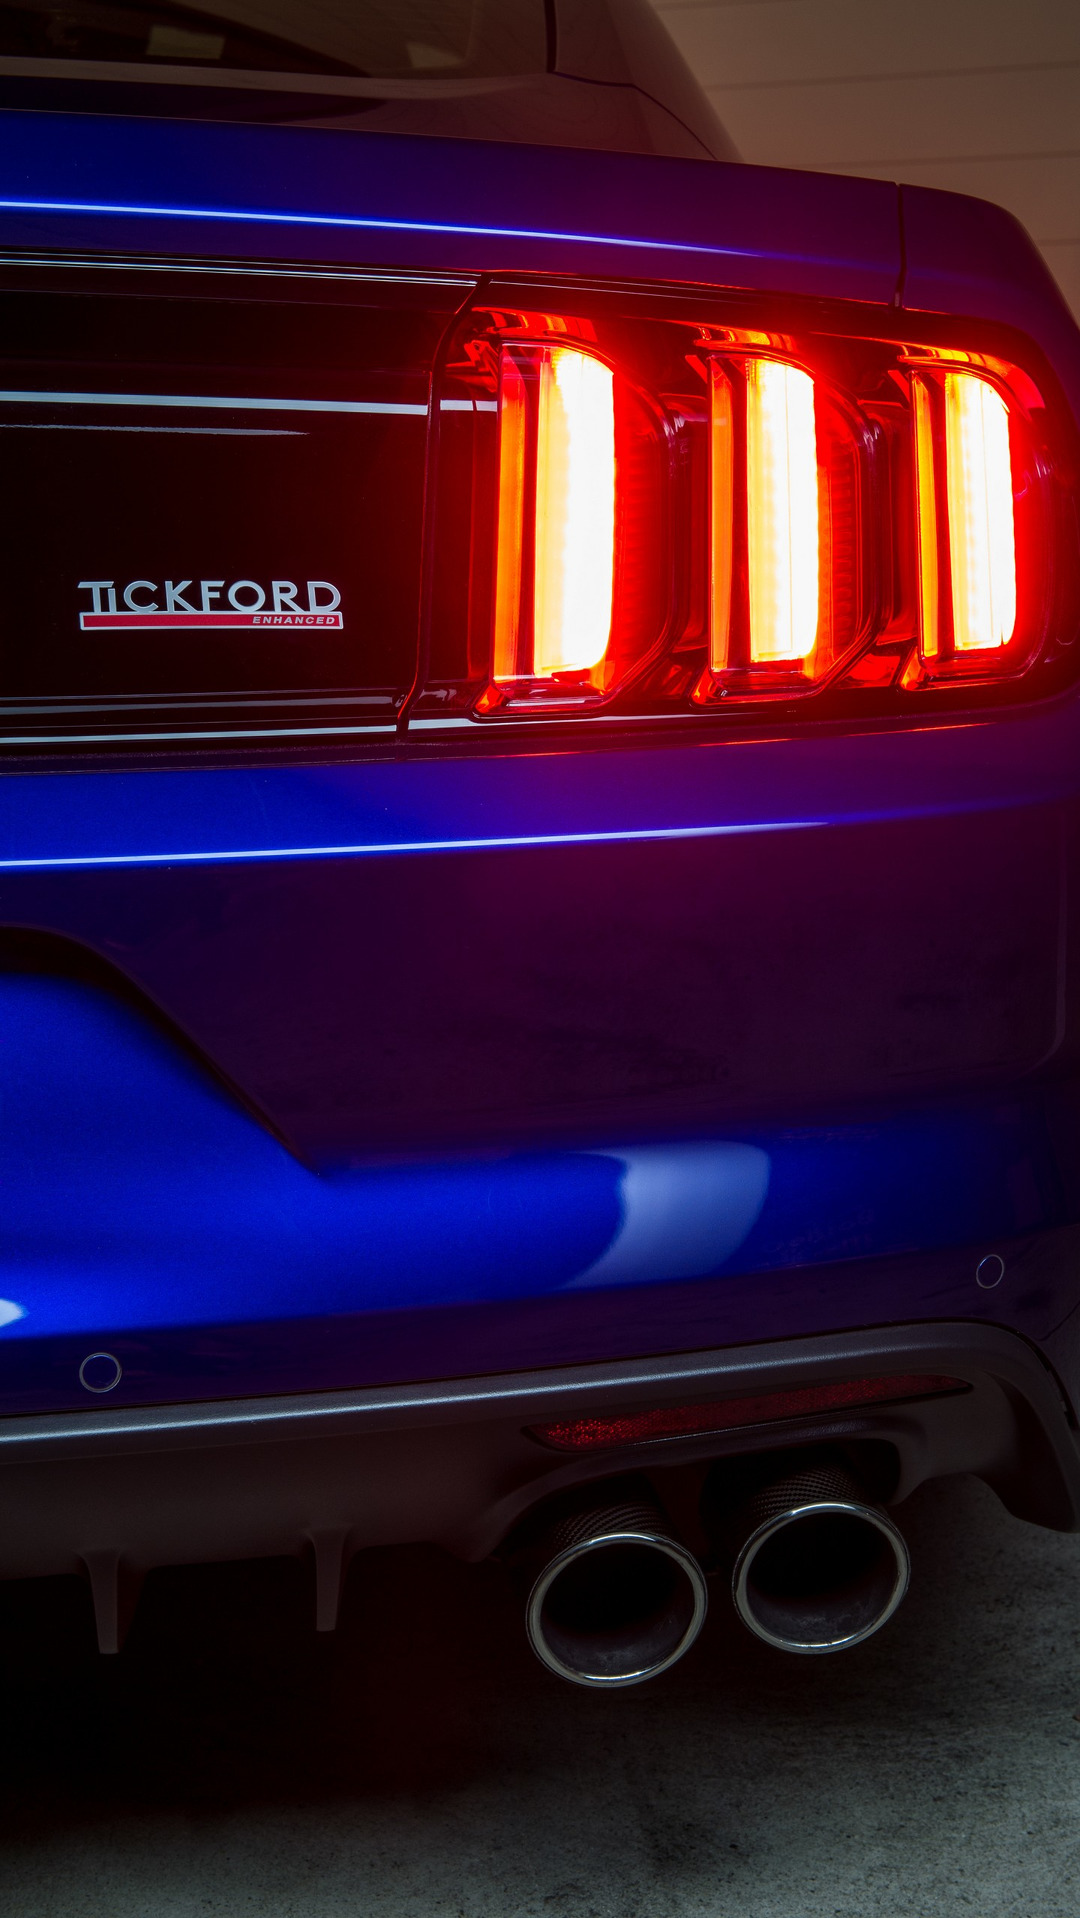 Tickford Ford Mustang